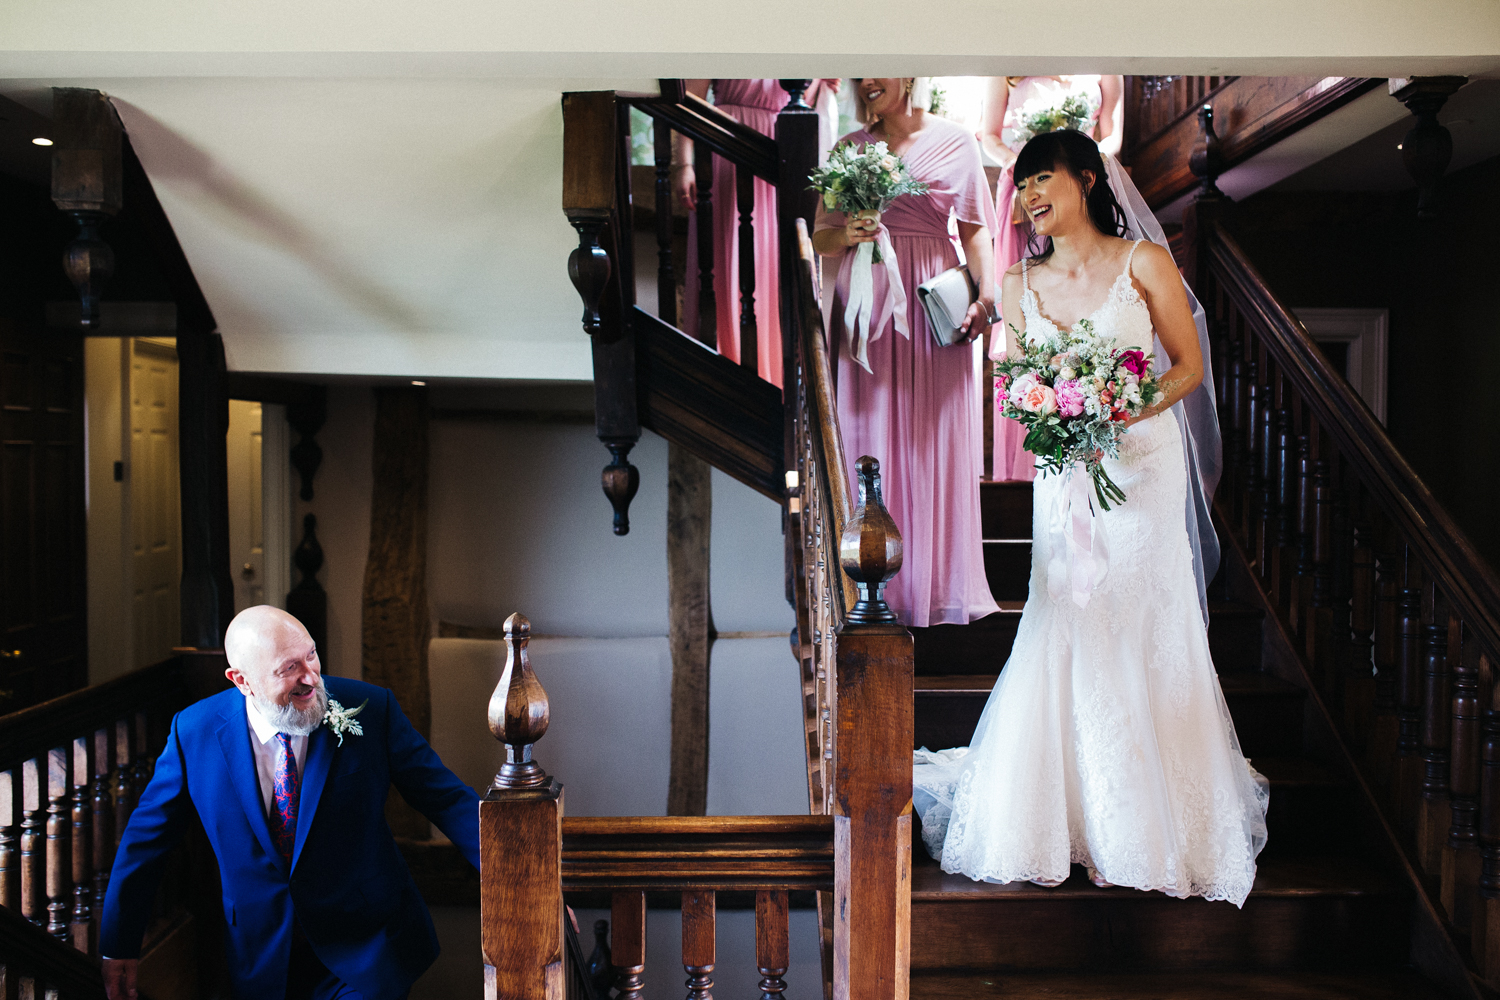 creative-relaxed-wedding-photography-stop-motion-films-teesside-north-east-yorkshire-0011.jpg